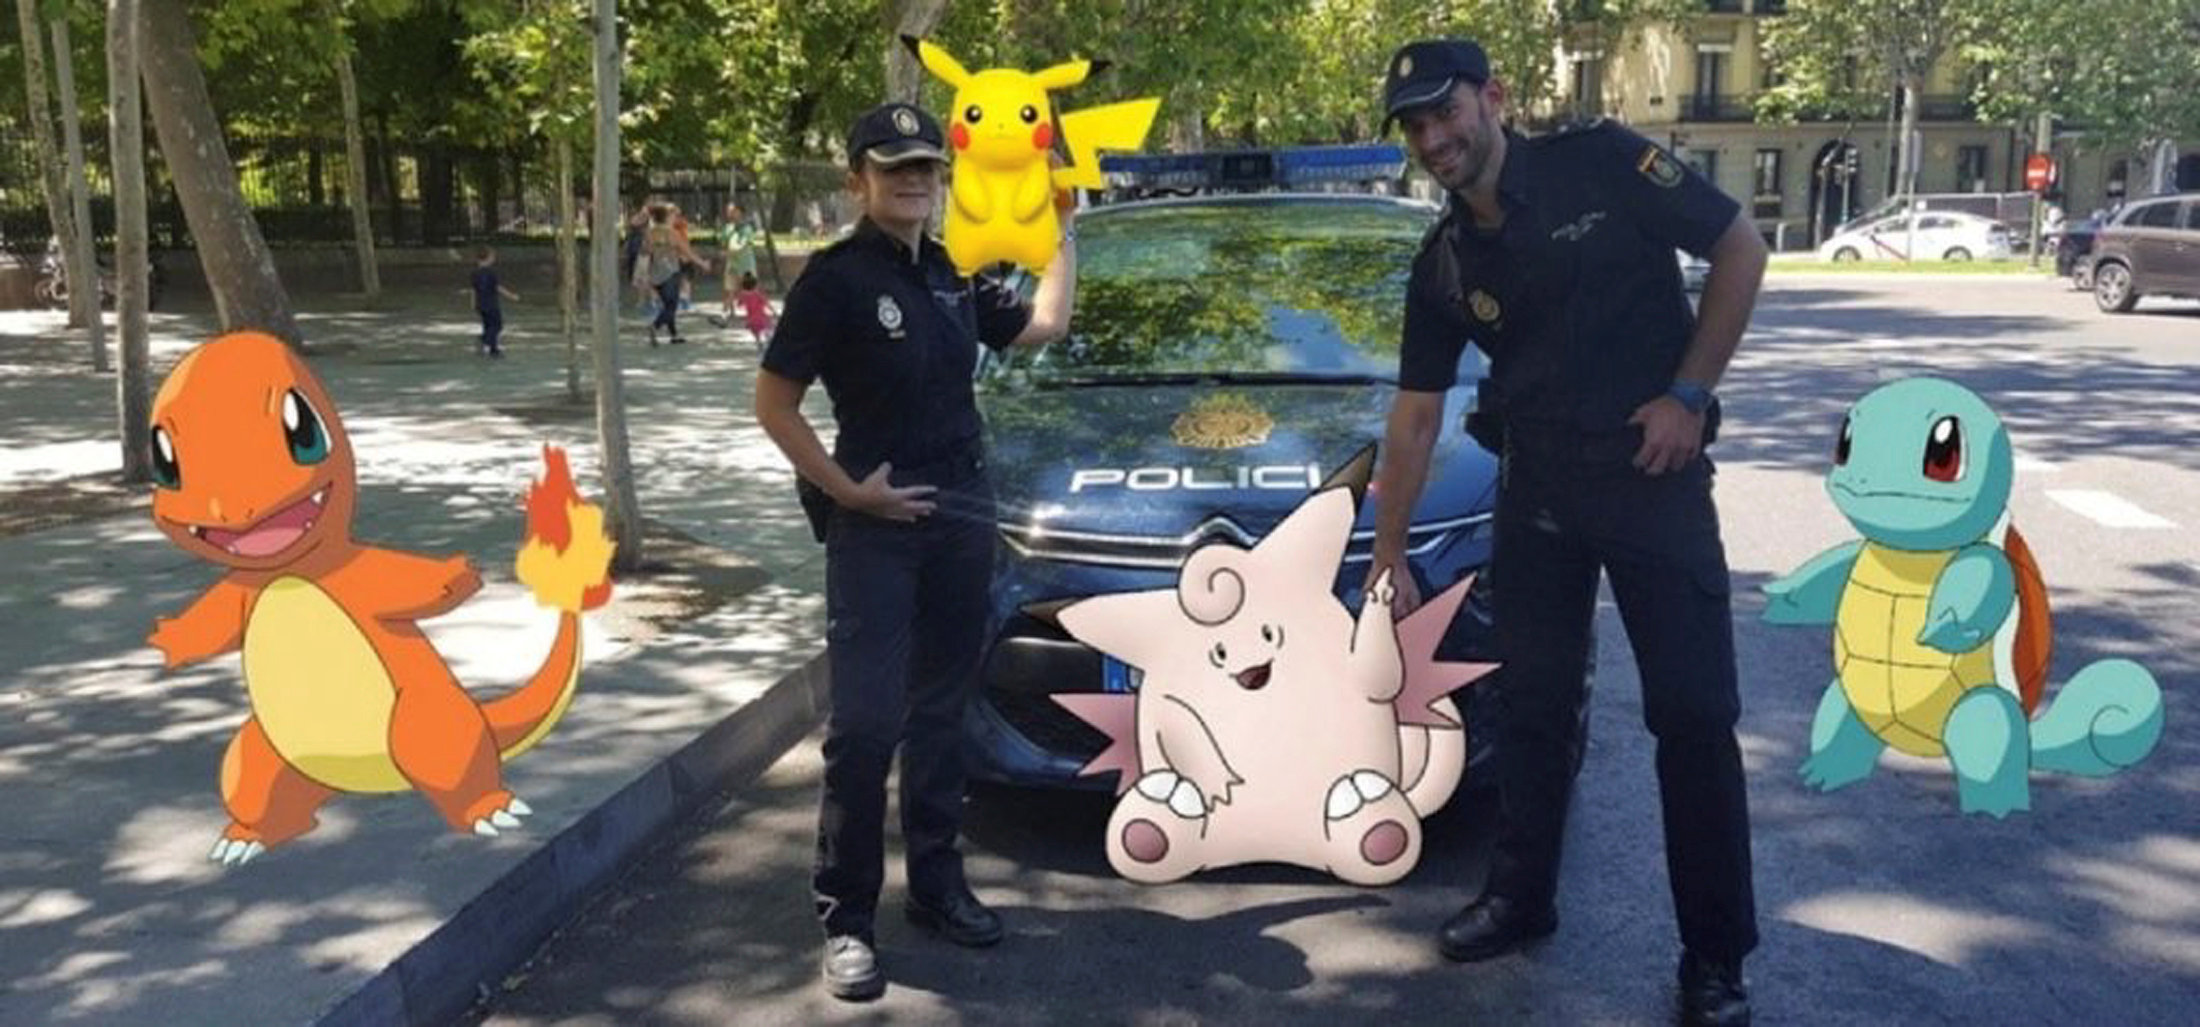 "MADRID (Reuters) - Spanish police issued guidelines on Monday on how to safely use augmented-reality video games after the release of the application Pokemon Go. The police advice included reminders that users are they are in ""the real world"" and must aware of real-world obstacles such as traffic lights and cars. Players of the game from Japan's Nintendo Co Ltd <7974.T> walk around real-life neighborhoods to hunt down virtual cartoon characters on their smartphone screens. The police issued their guidelines after two Japanese tourists were rescued from a motorway tunnel in Barcelona on Saturday, where they had wandered in search of Pokemon characters, according to Spanish media. The mobile game has become an instant hit just one week after launch. Police warned players that the use of GPS technology for the game means users' location is visible to others, potentially making them vulnerable to muggings or theft, as well as signaling when they are not at home. Across the United States, players have been drawn down dark alleys and into dangerous neighborhoods in search of the imaginary creatures, only to be targeted by criminals. The police manual warns players not be distracted by the excitement of catching rare Pokémon characters and to remember their safety is paramount. Pokemon Go became available in Spain on July 15, following its release in the United States, Australia and the United Kingdom the previous week. The game has been a runaway success, boosting Nintendo's market share by $17 billion in just over a week. (Reporting by Catherine Bennett; Edited by Amanda Cooper)"